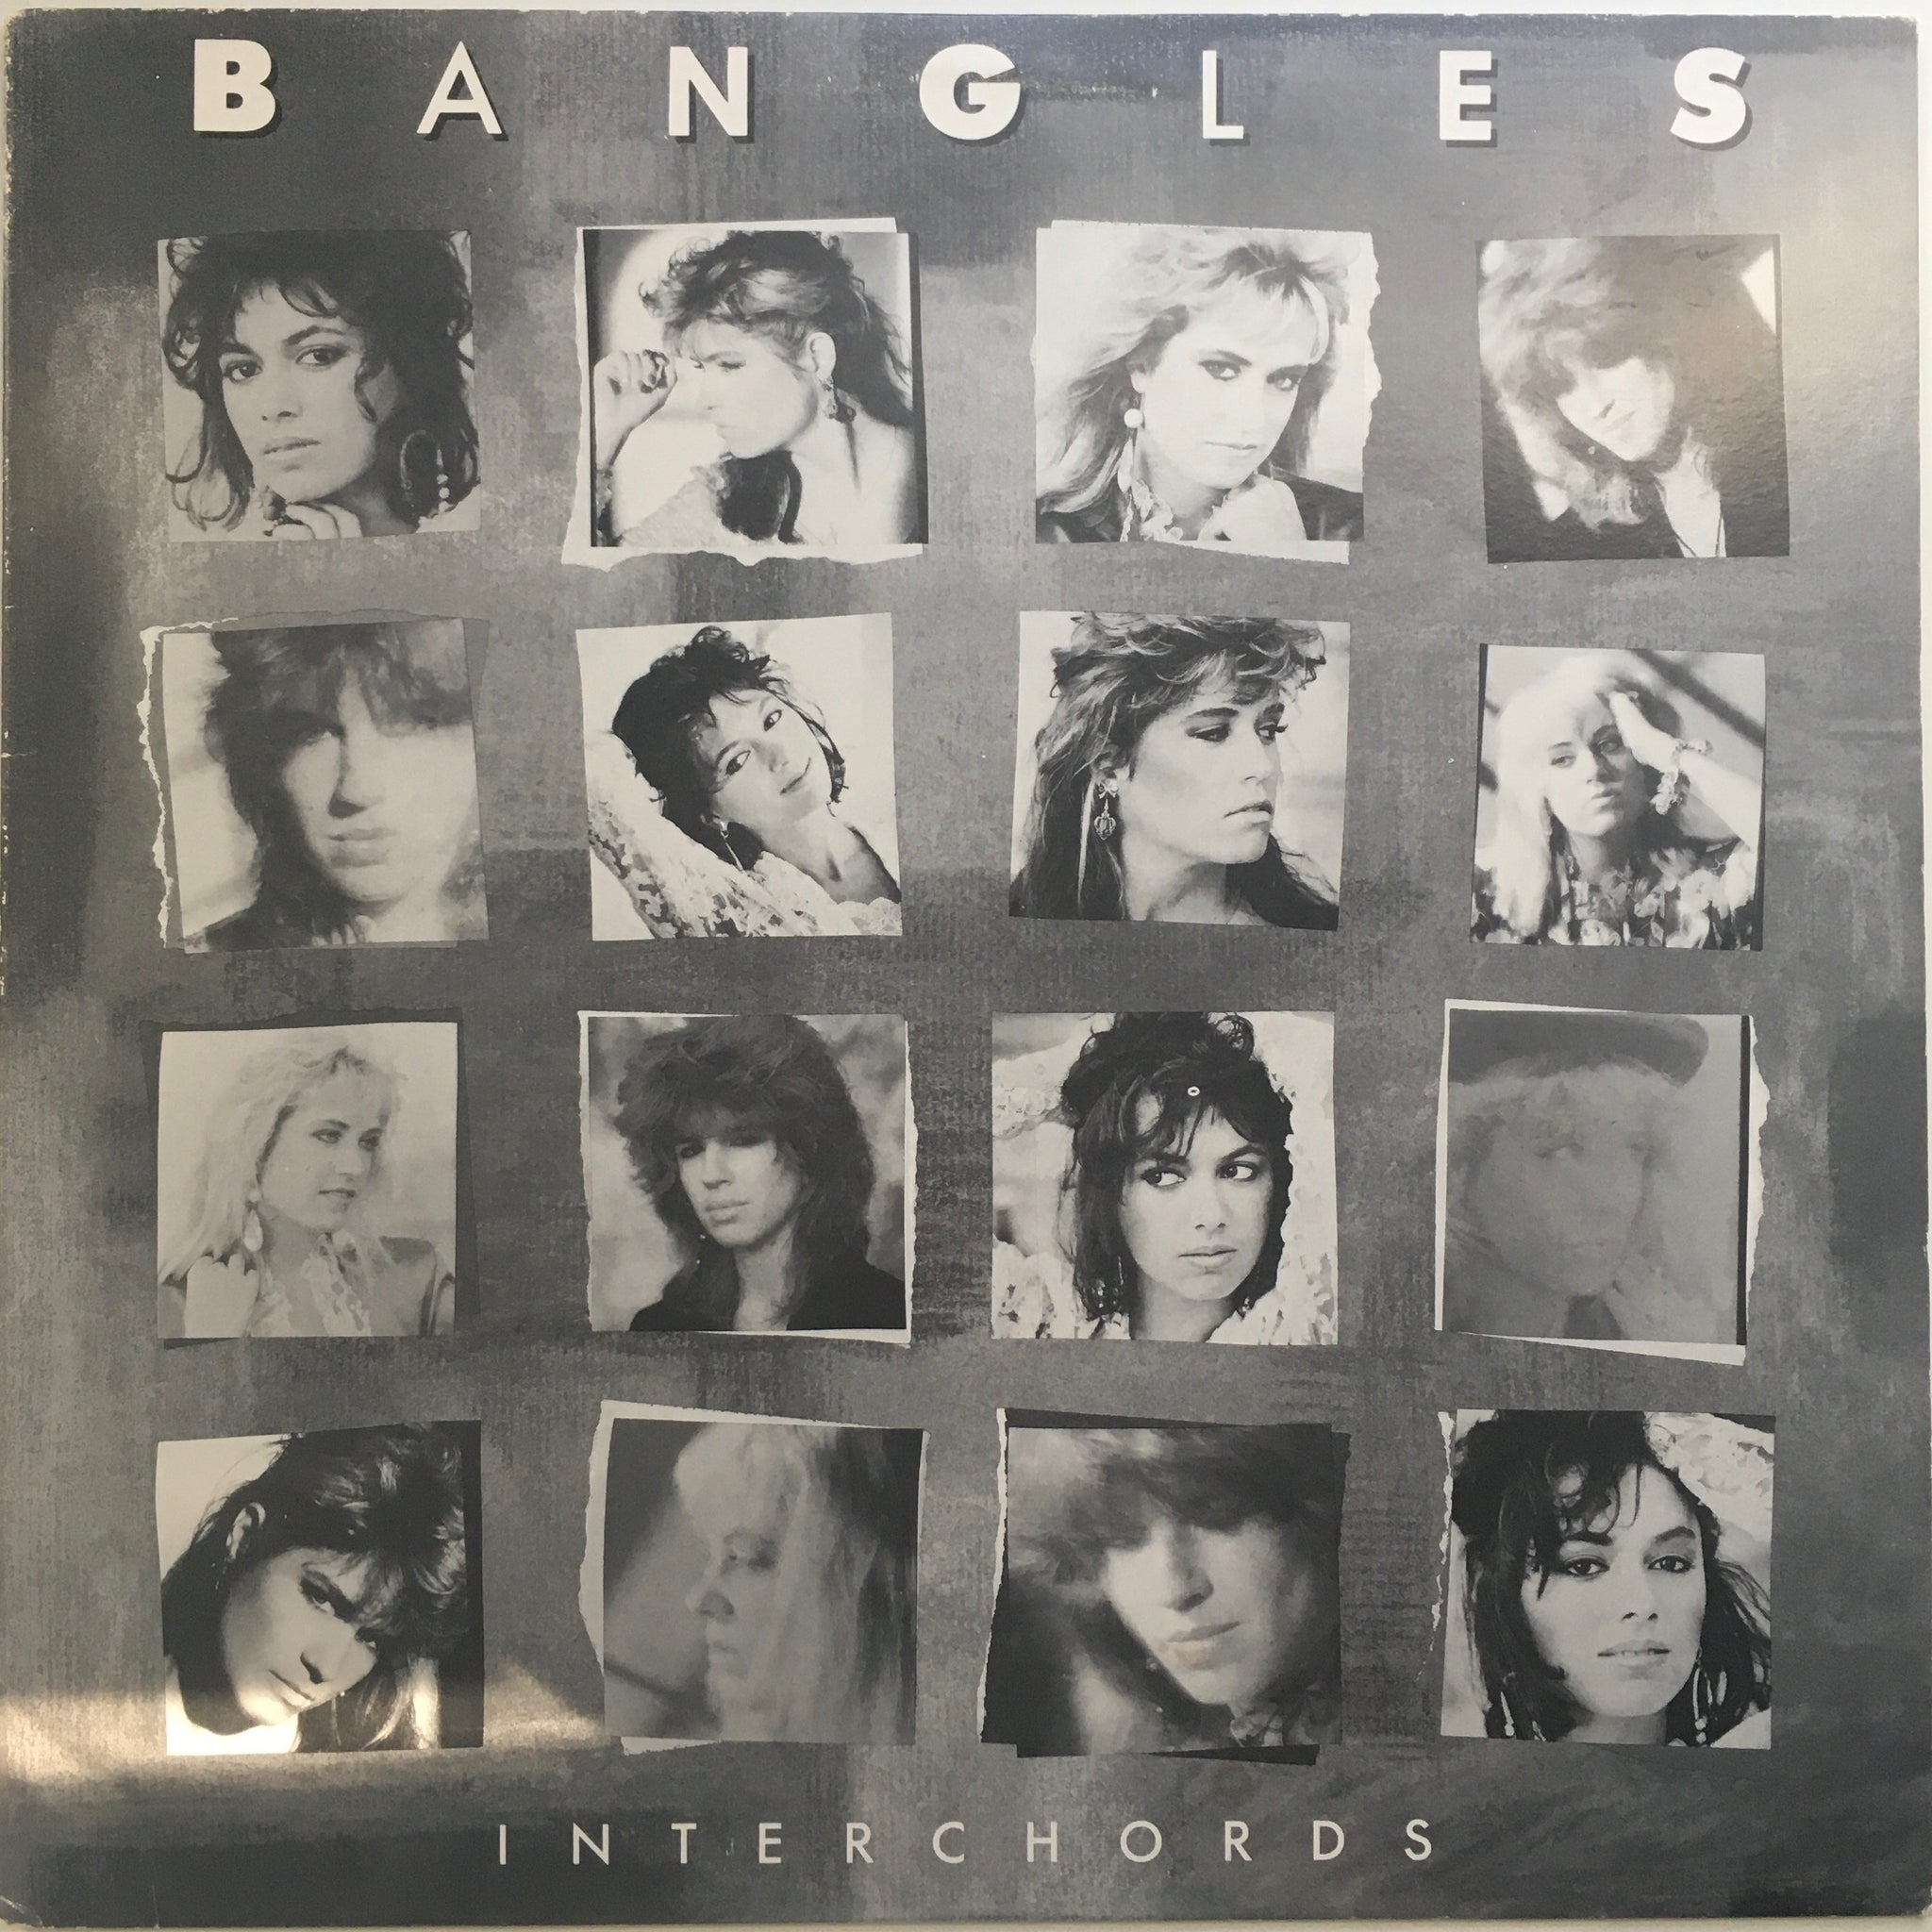 "The Bangles, ""Interchords"" Interview LP (1988). Front cover image. Pop, power-pop, interview accompaniment via Interchords series to Different Light."